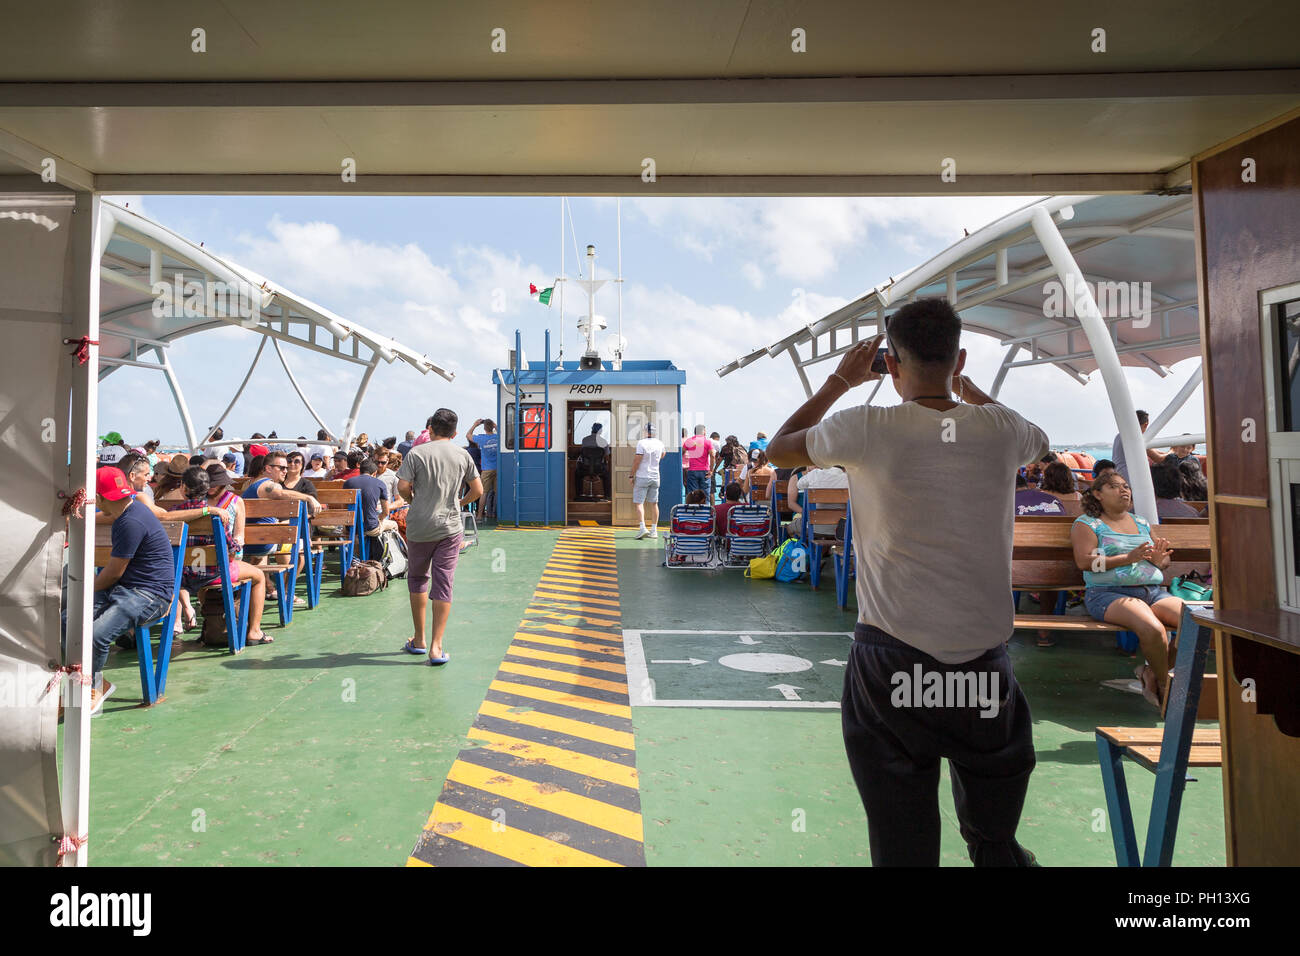 ISLA MUJERES, QR, MEXICO - FEB 11, 2018: The crowded deck of a ferry heading to Isla Mujeres. - Stock Image